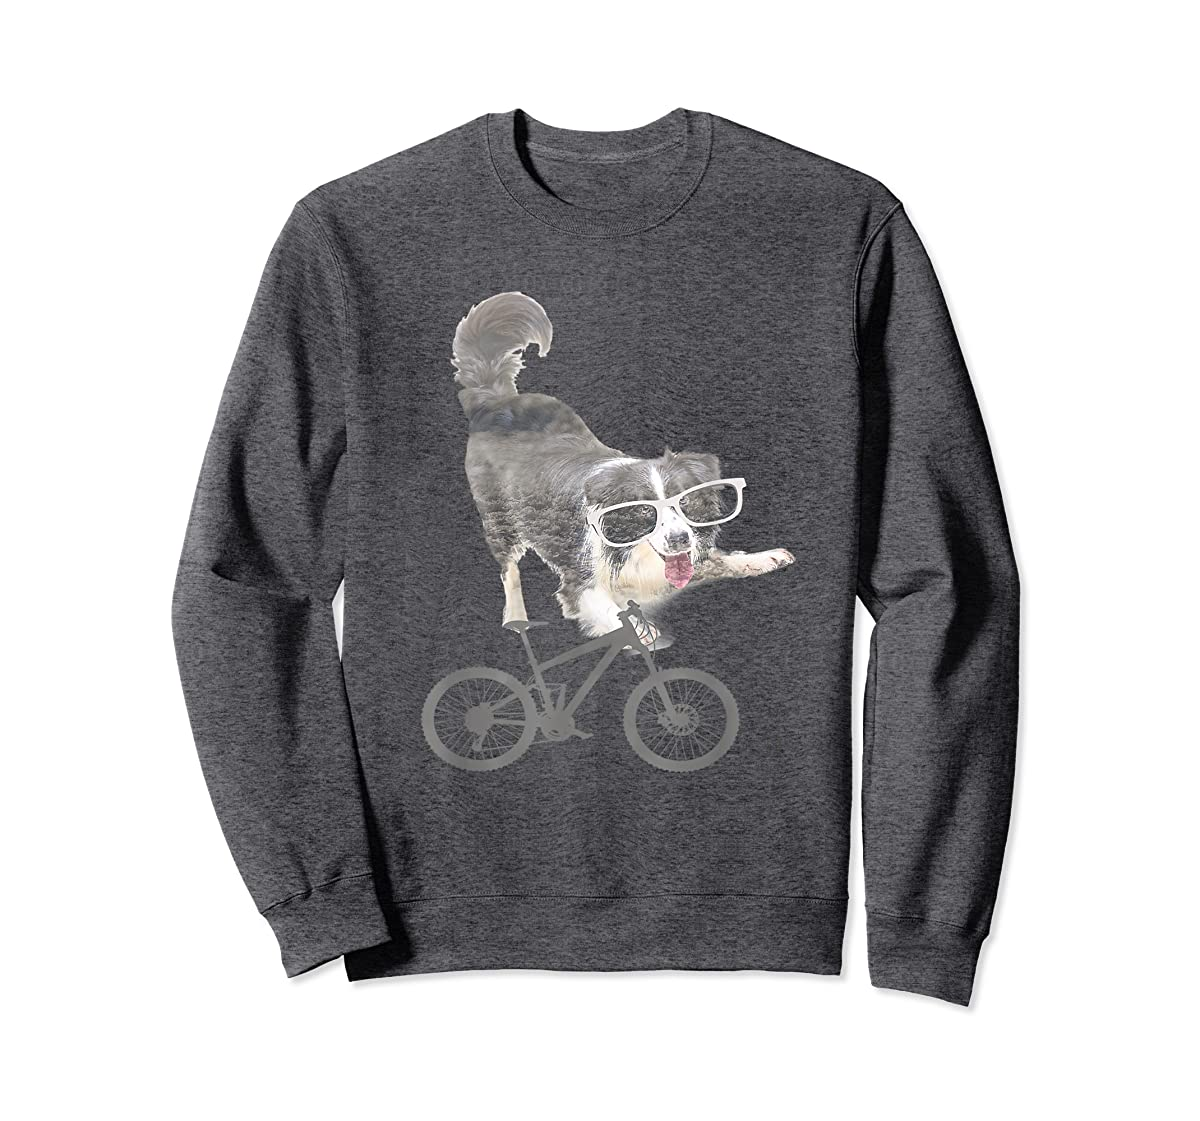 Border collie on a Bicycle T-shirt-Sweatshirt-Dark Heather